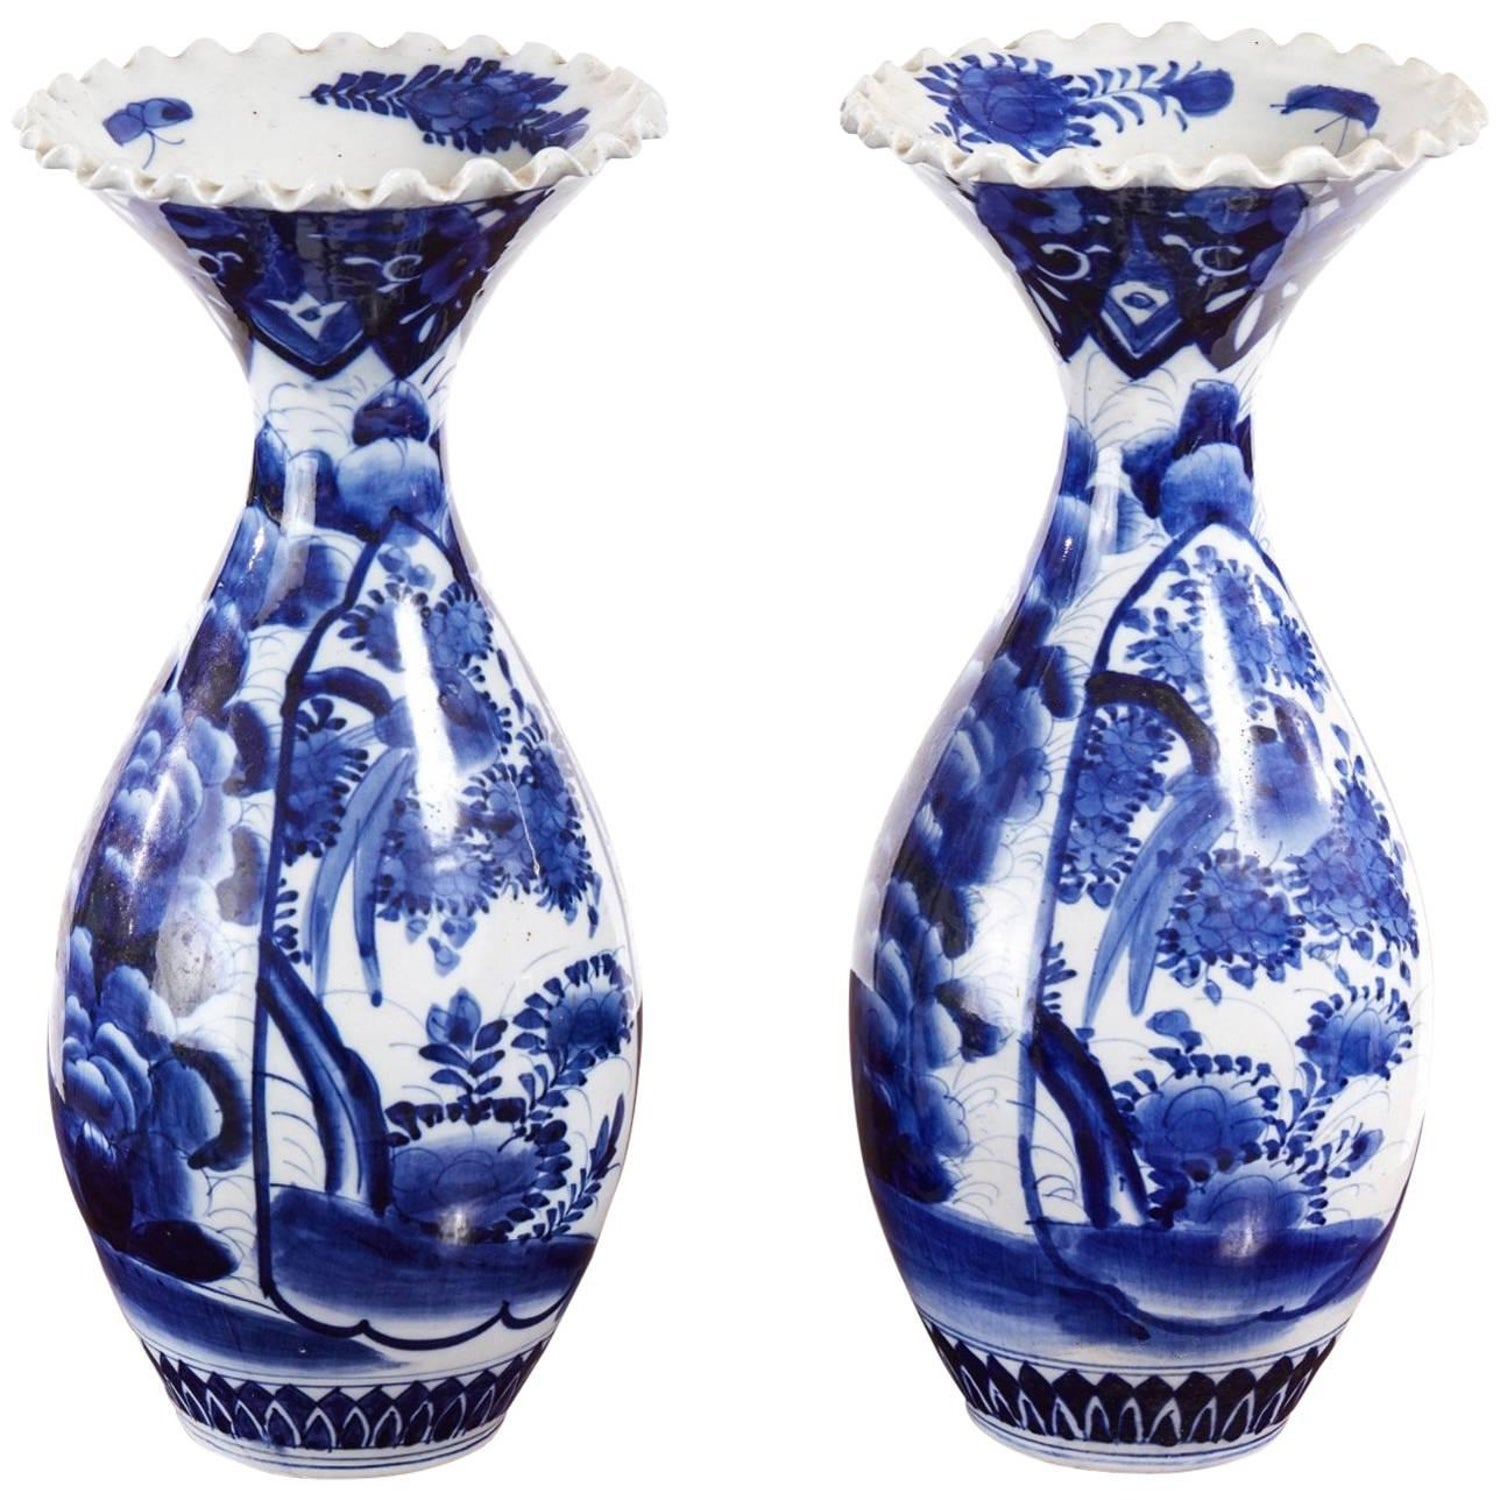 Large pair of 19th century japanese blue and white imari vases for large pair of 19th century japanese blue and white imari vases for sale at 1stdibs reviewsmspy